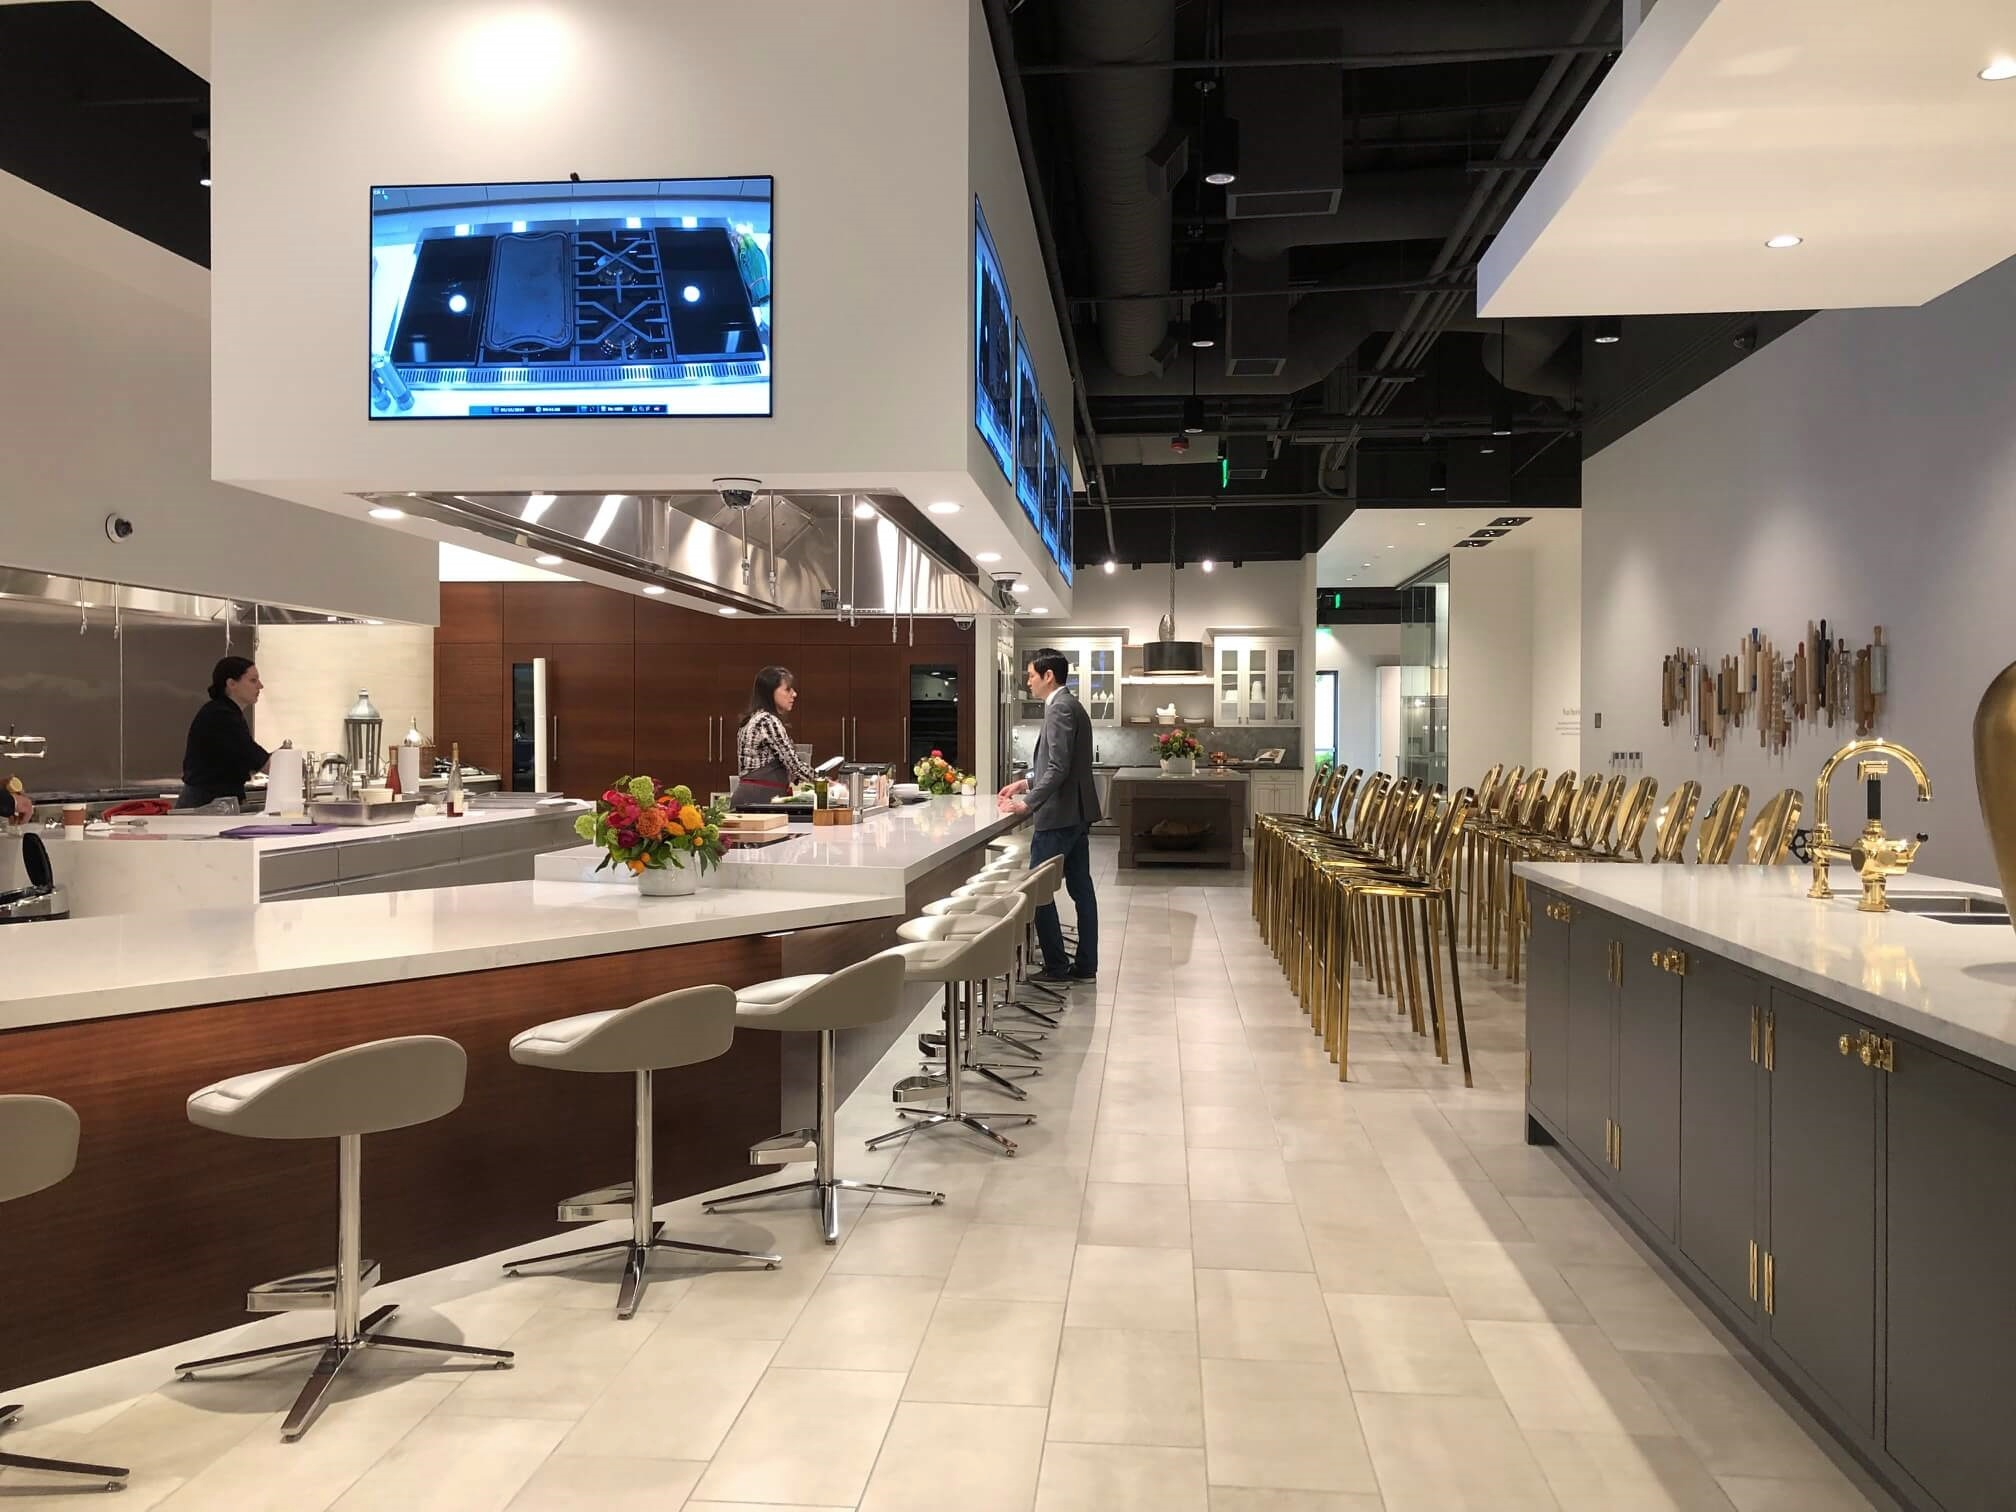 Demonstration kitchen at SKS Appliances Experience and Design Center, Napa